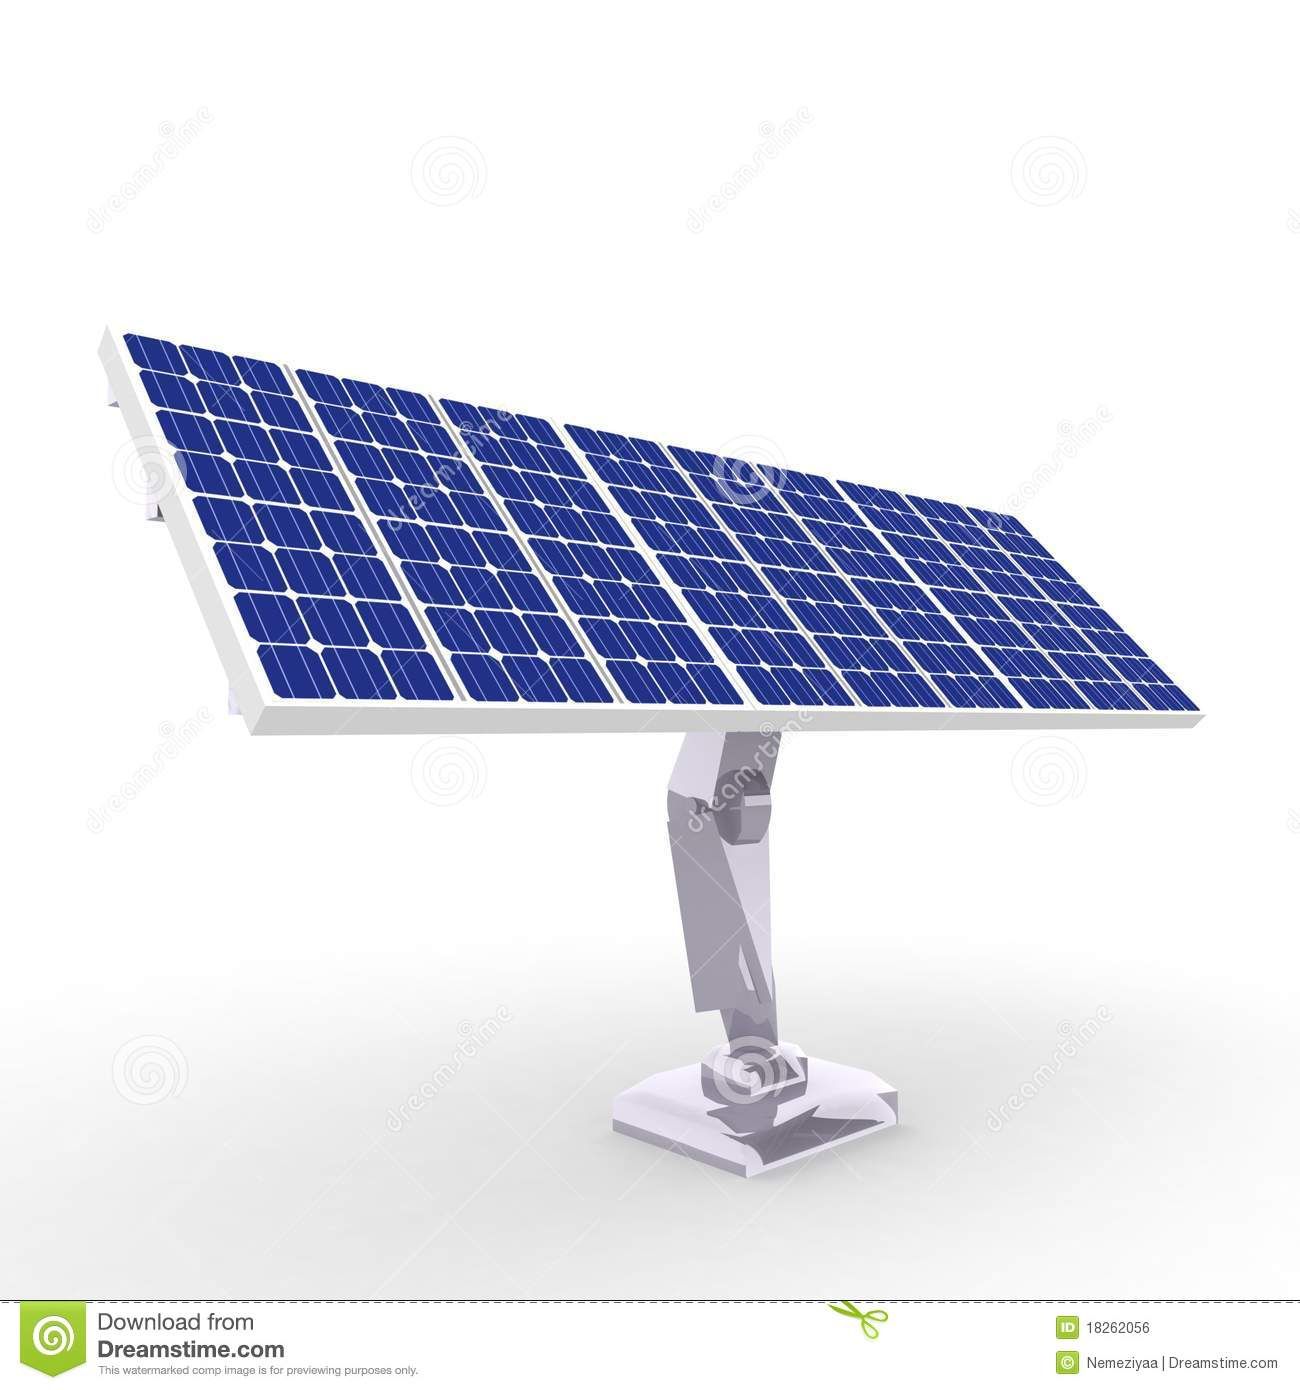 Save Money and the Planet. Start with Solar.